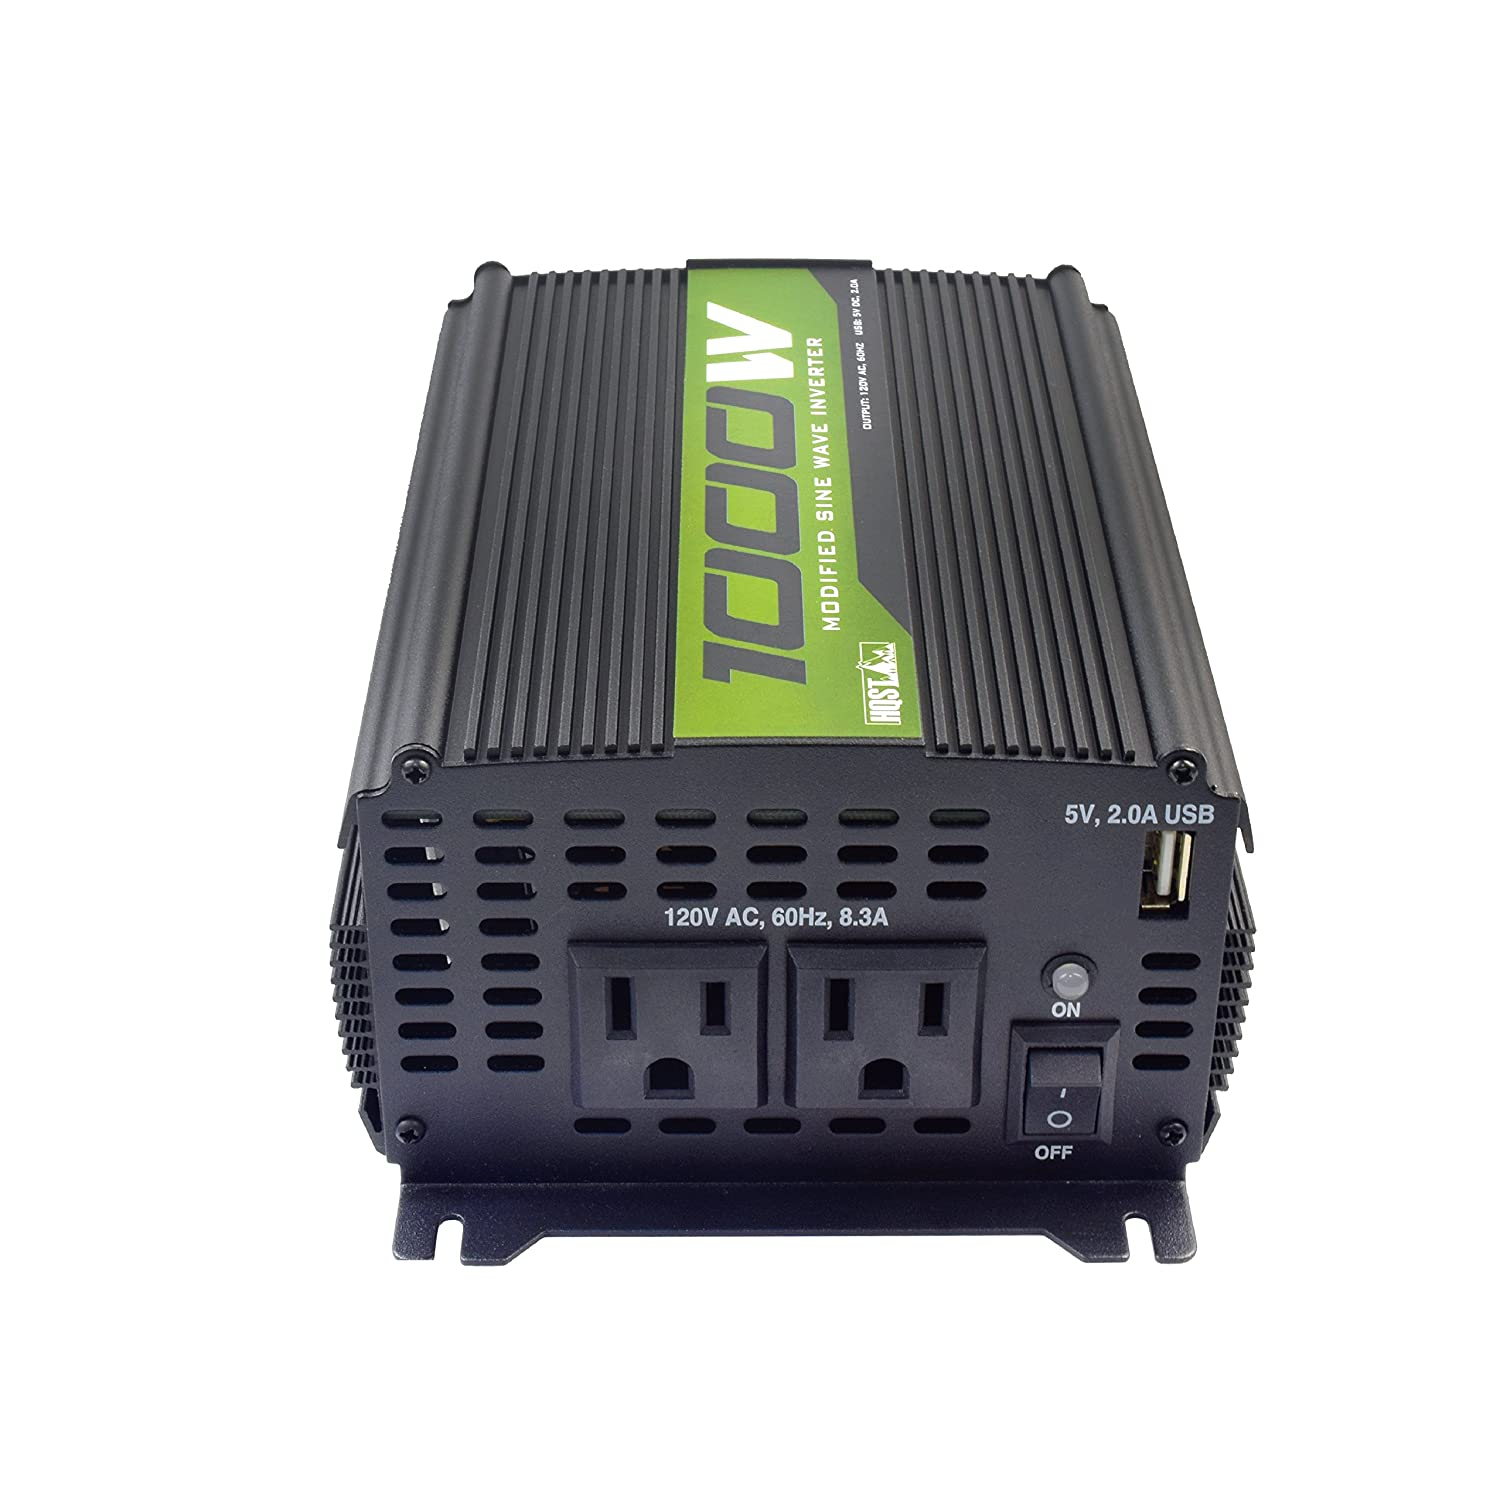 Hqst 1000w Off Grid Power Inverter 12v Dc To 110v Ac Modified Sine Wave Using Pic Microcontroller Dual Outlets With Usb Port And Cables Car Electronics